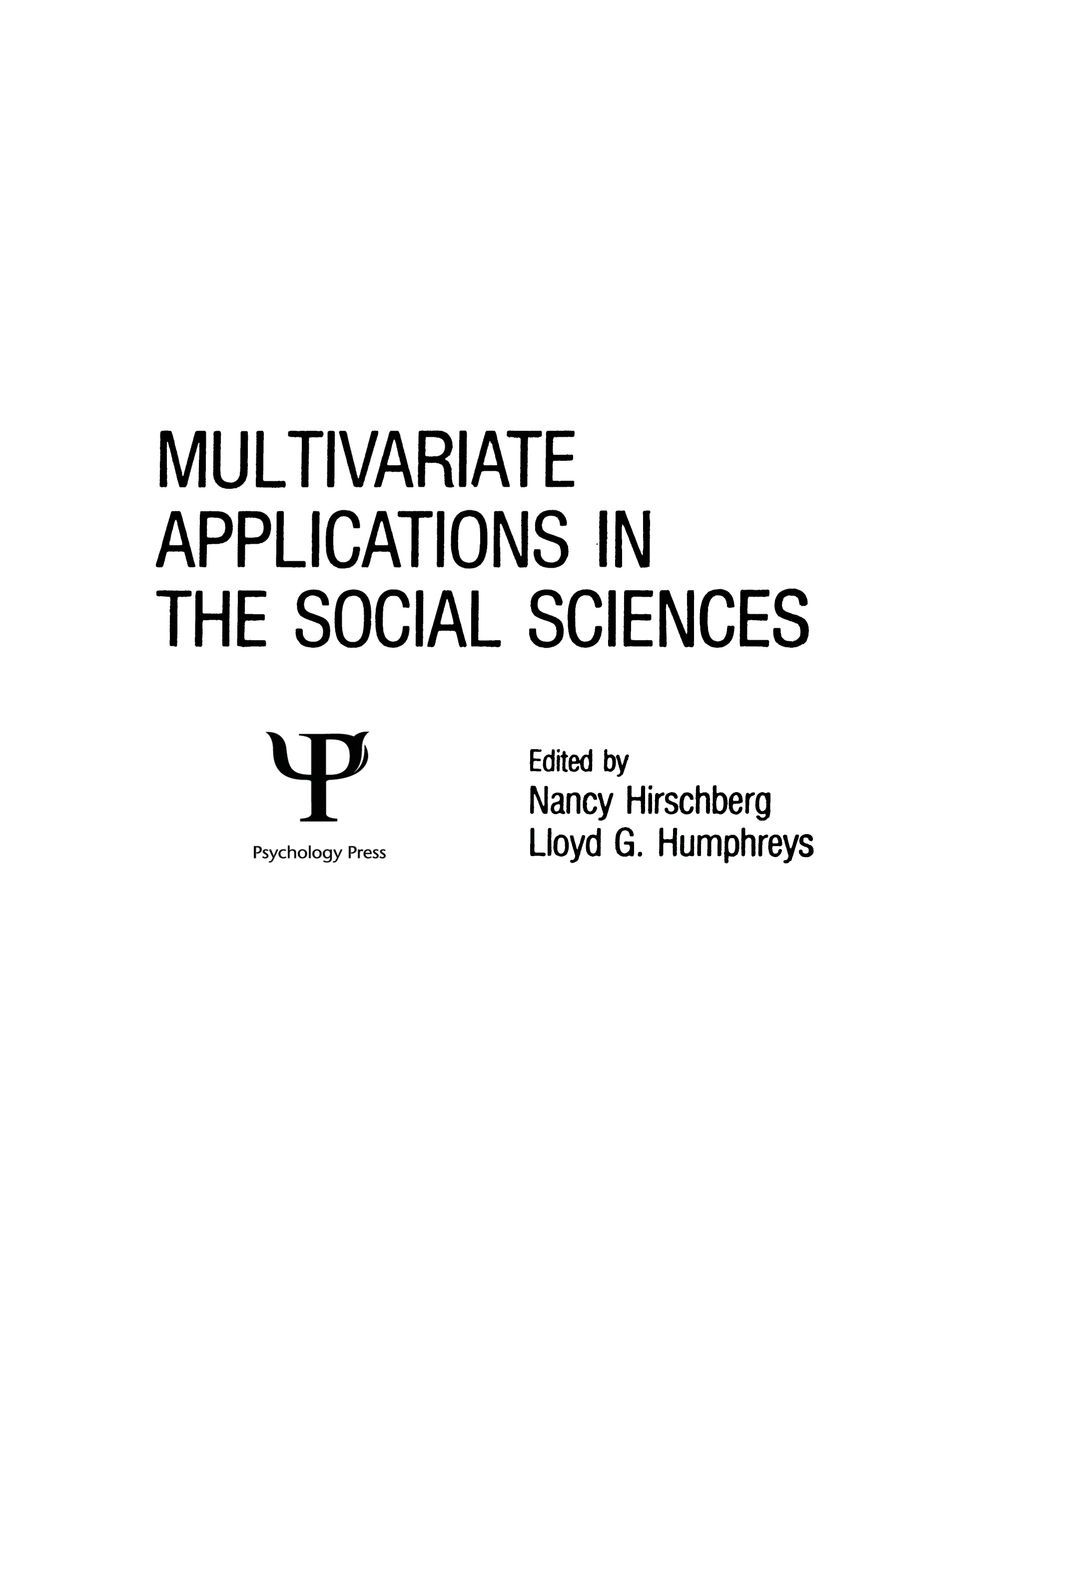 Multivariate Applications in the Social Sciences